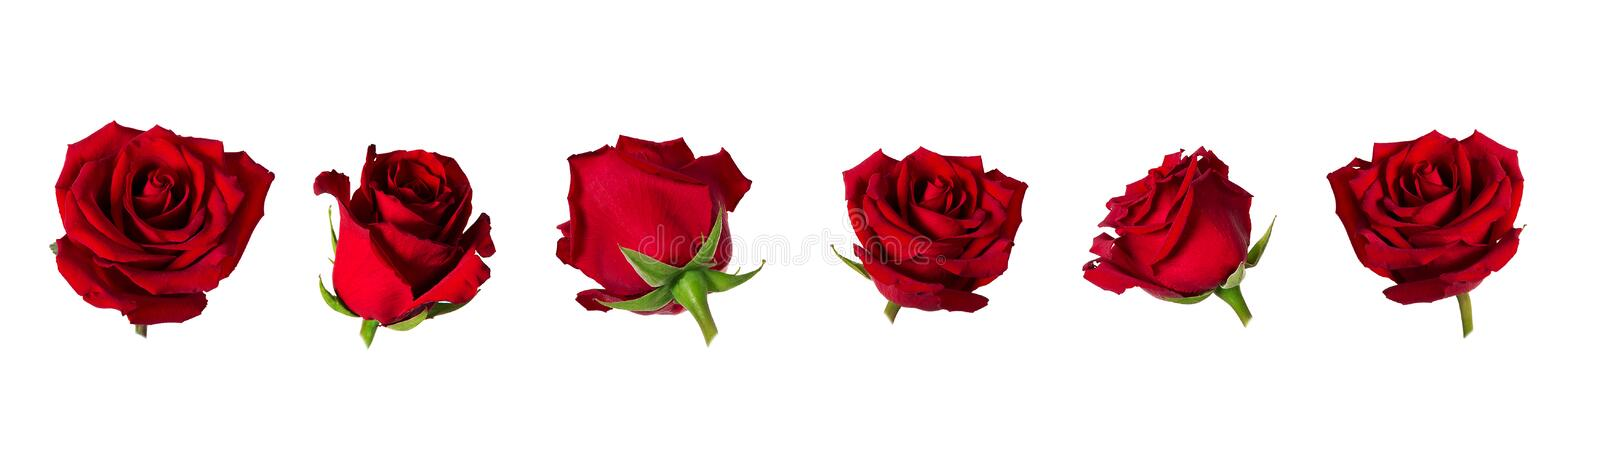 Set of six beautiful red rose flowerheads with sepals isolated on white background stock photography